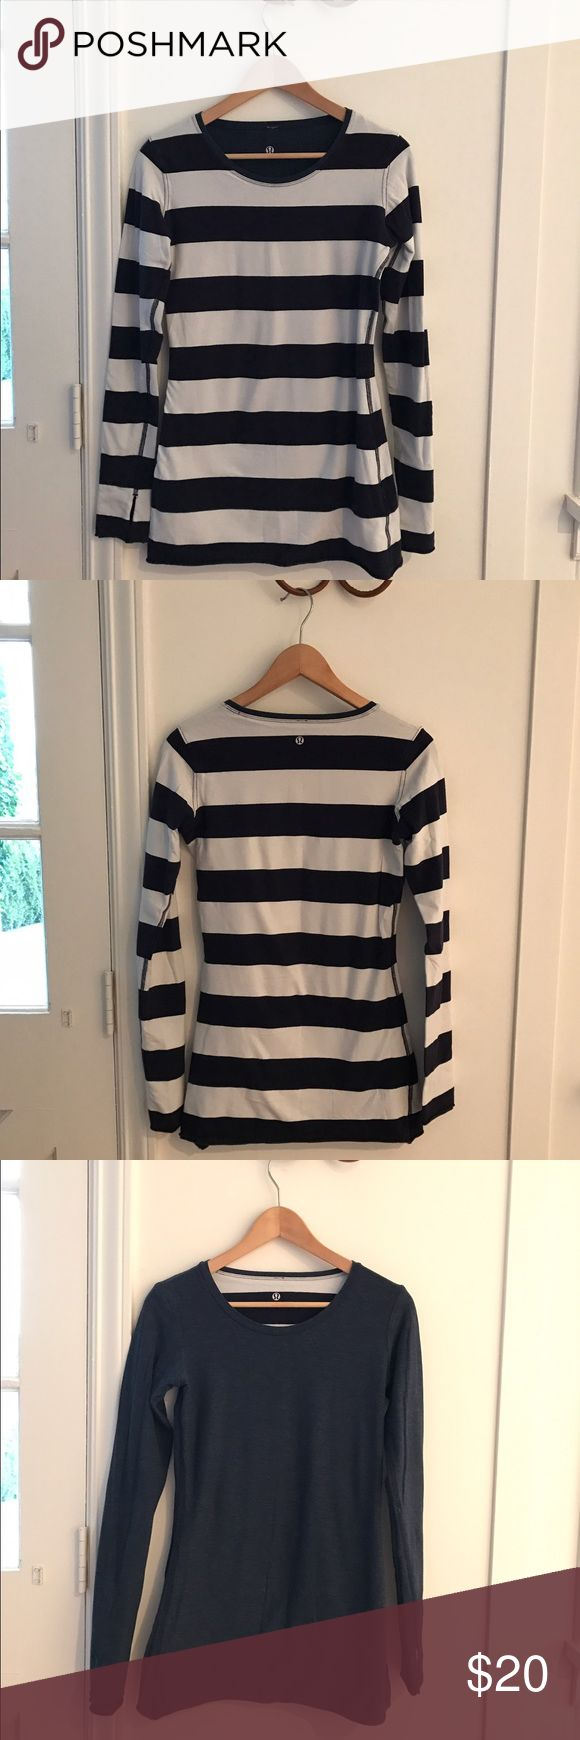 Lululemin Reversible Striped Top Lululemon reversible top in a stretchy luon fabric. One side is navy and white striped and the opposite is a light navy color. Thumb holes on sleeves for warmth. lululemon athletica Tops Tees - Long Sleeve